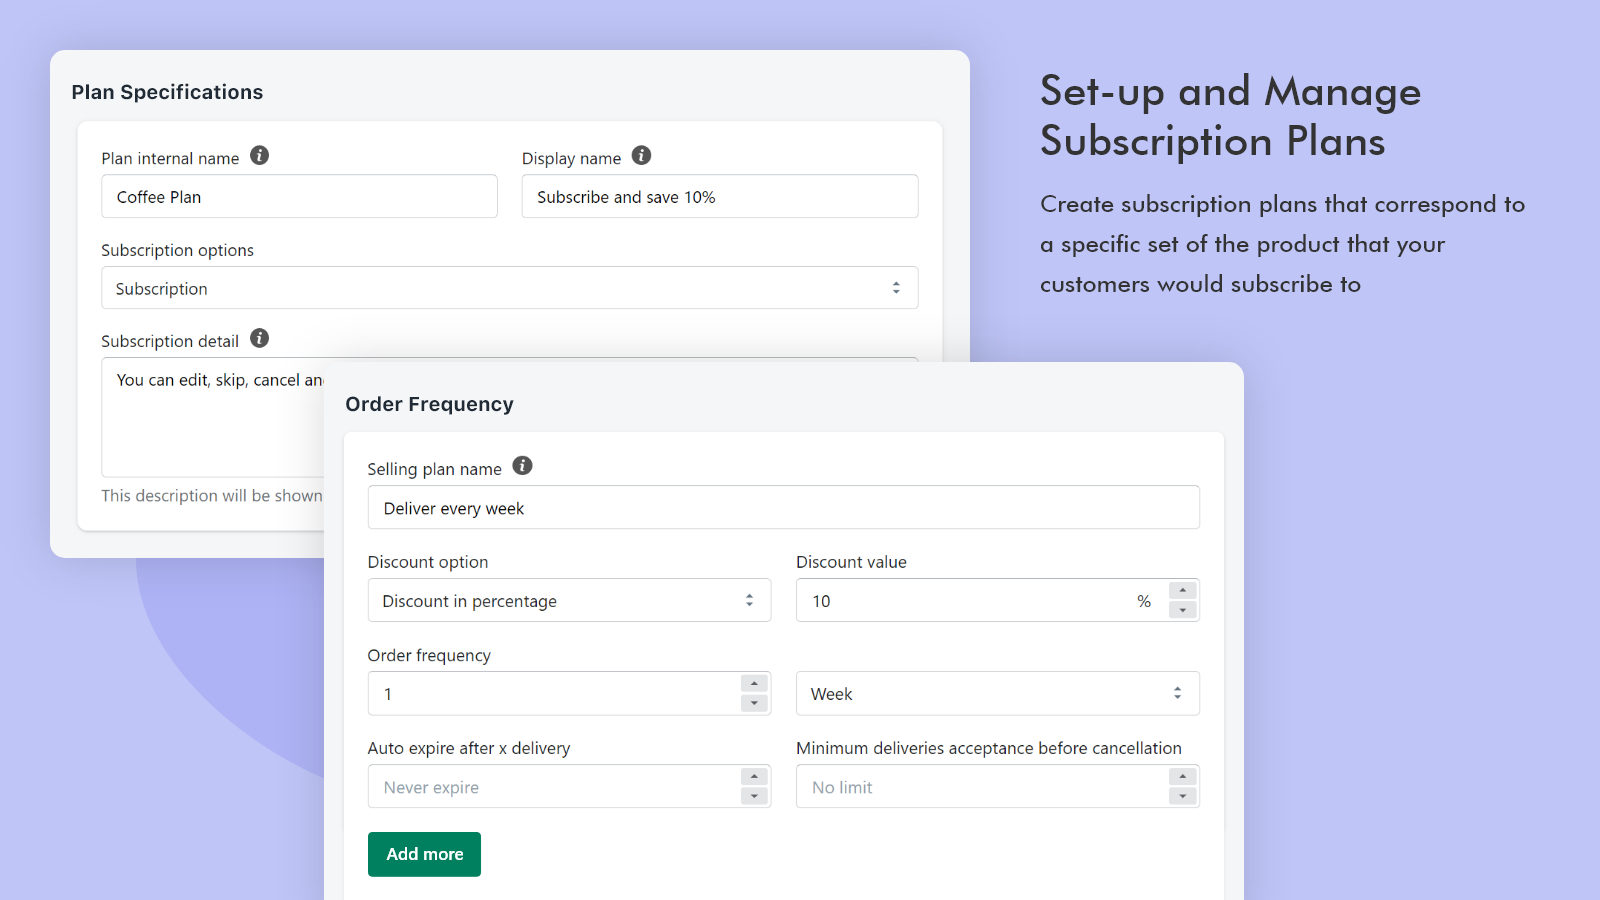 Set-up and manage subscription plans - Recurring payments